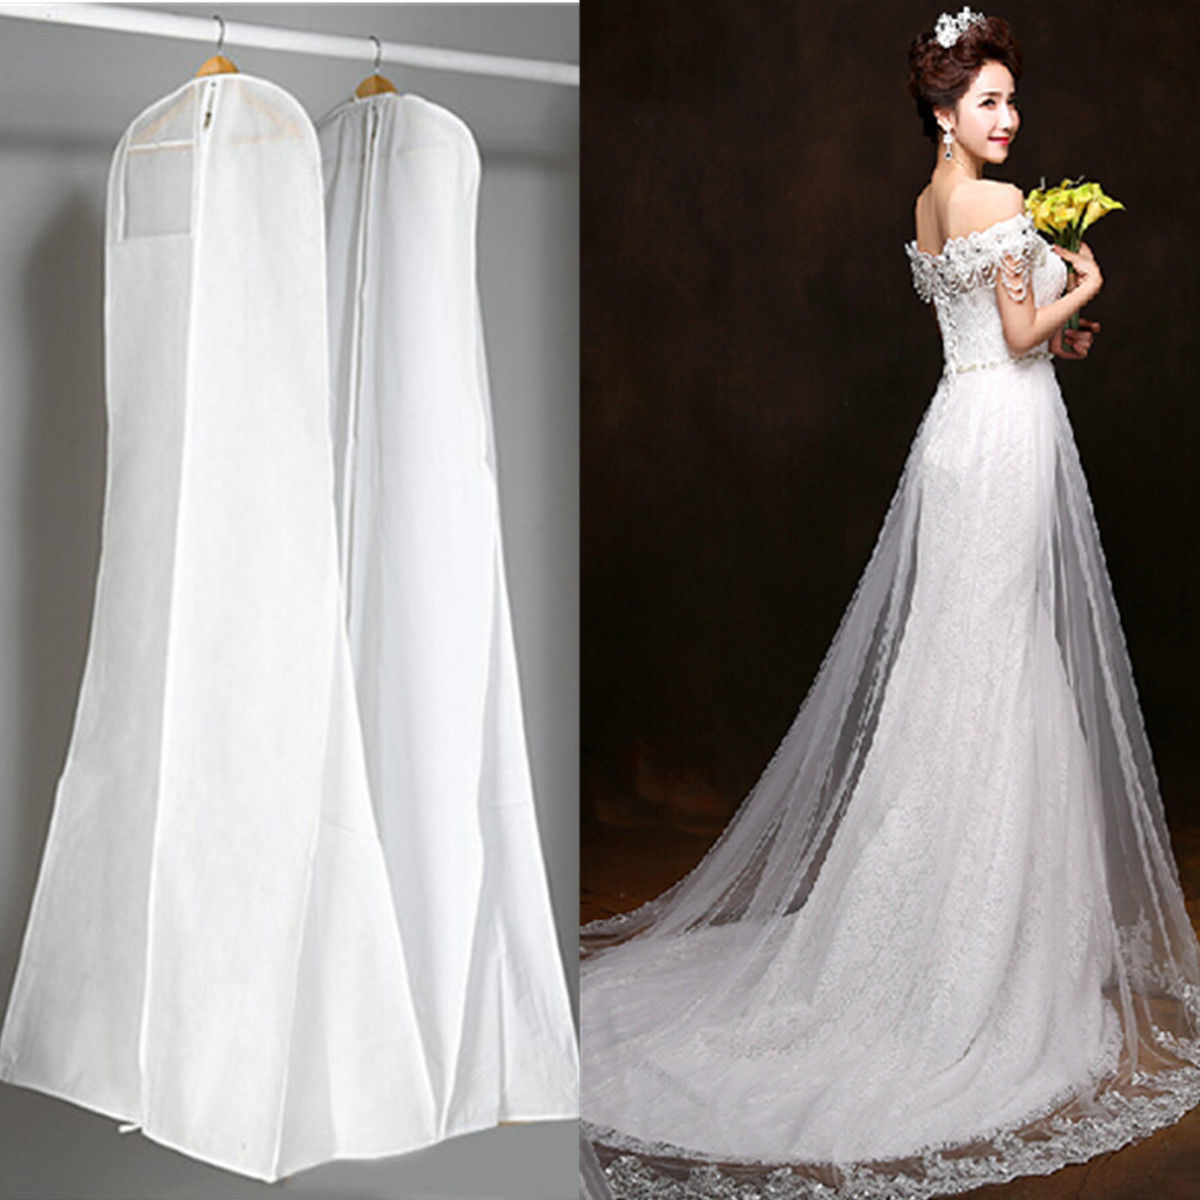 White Extra Large Wedding Dress Bridal Gown Garment Breathable Cover ...